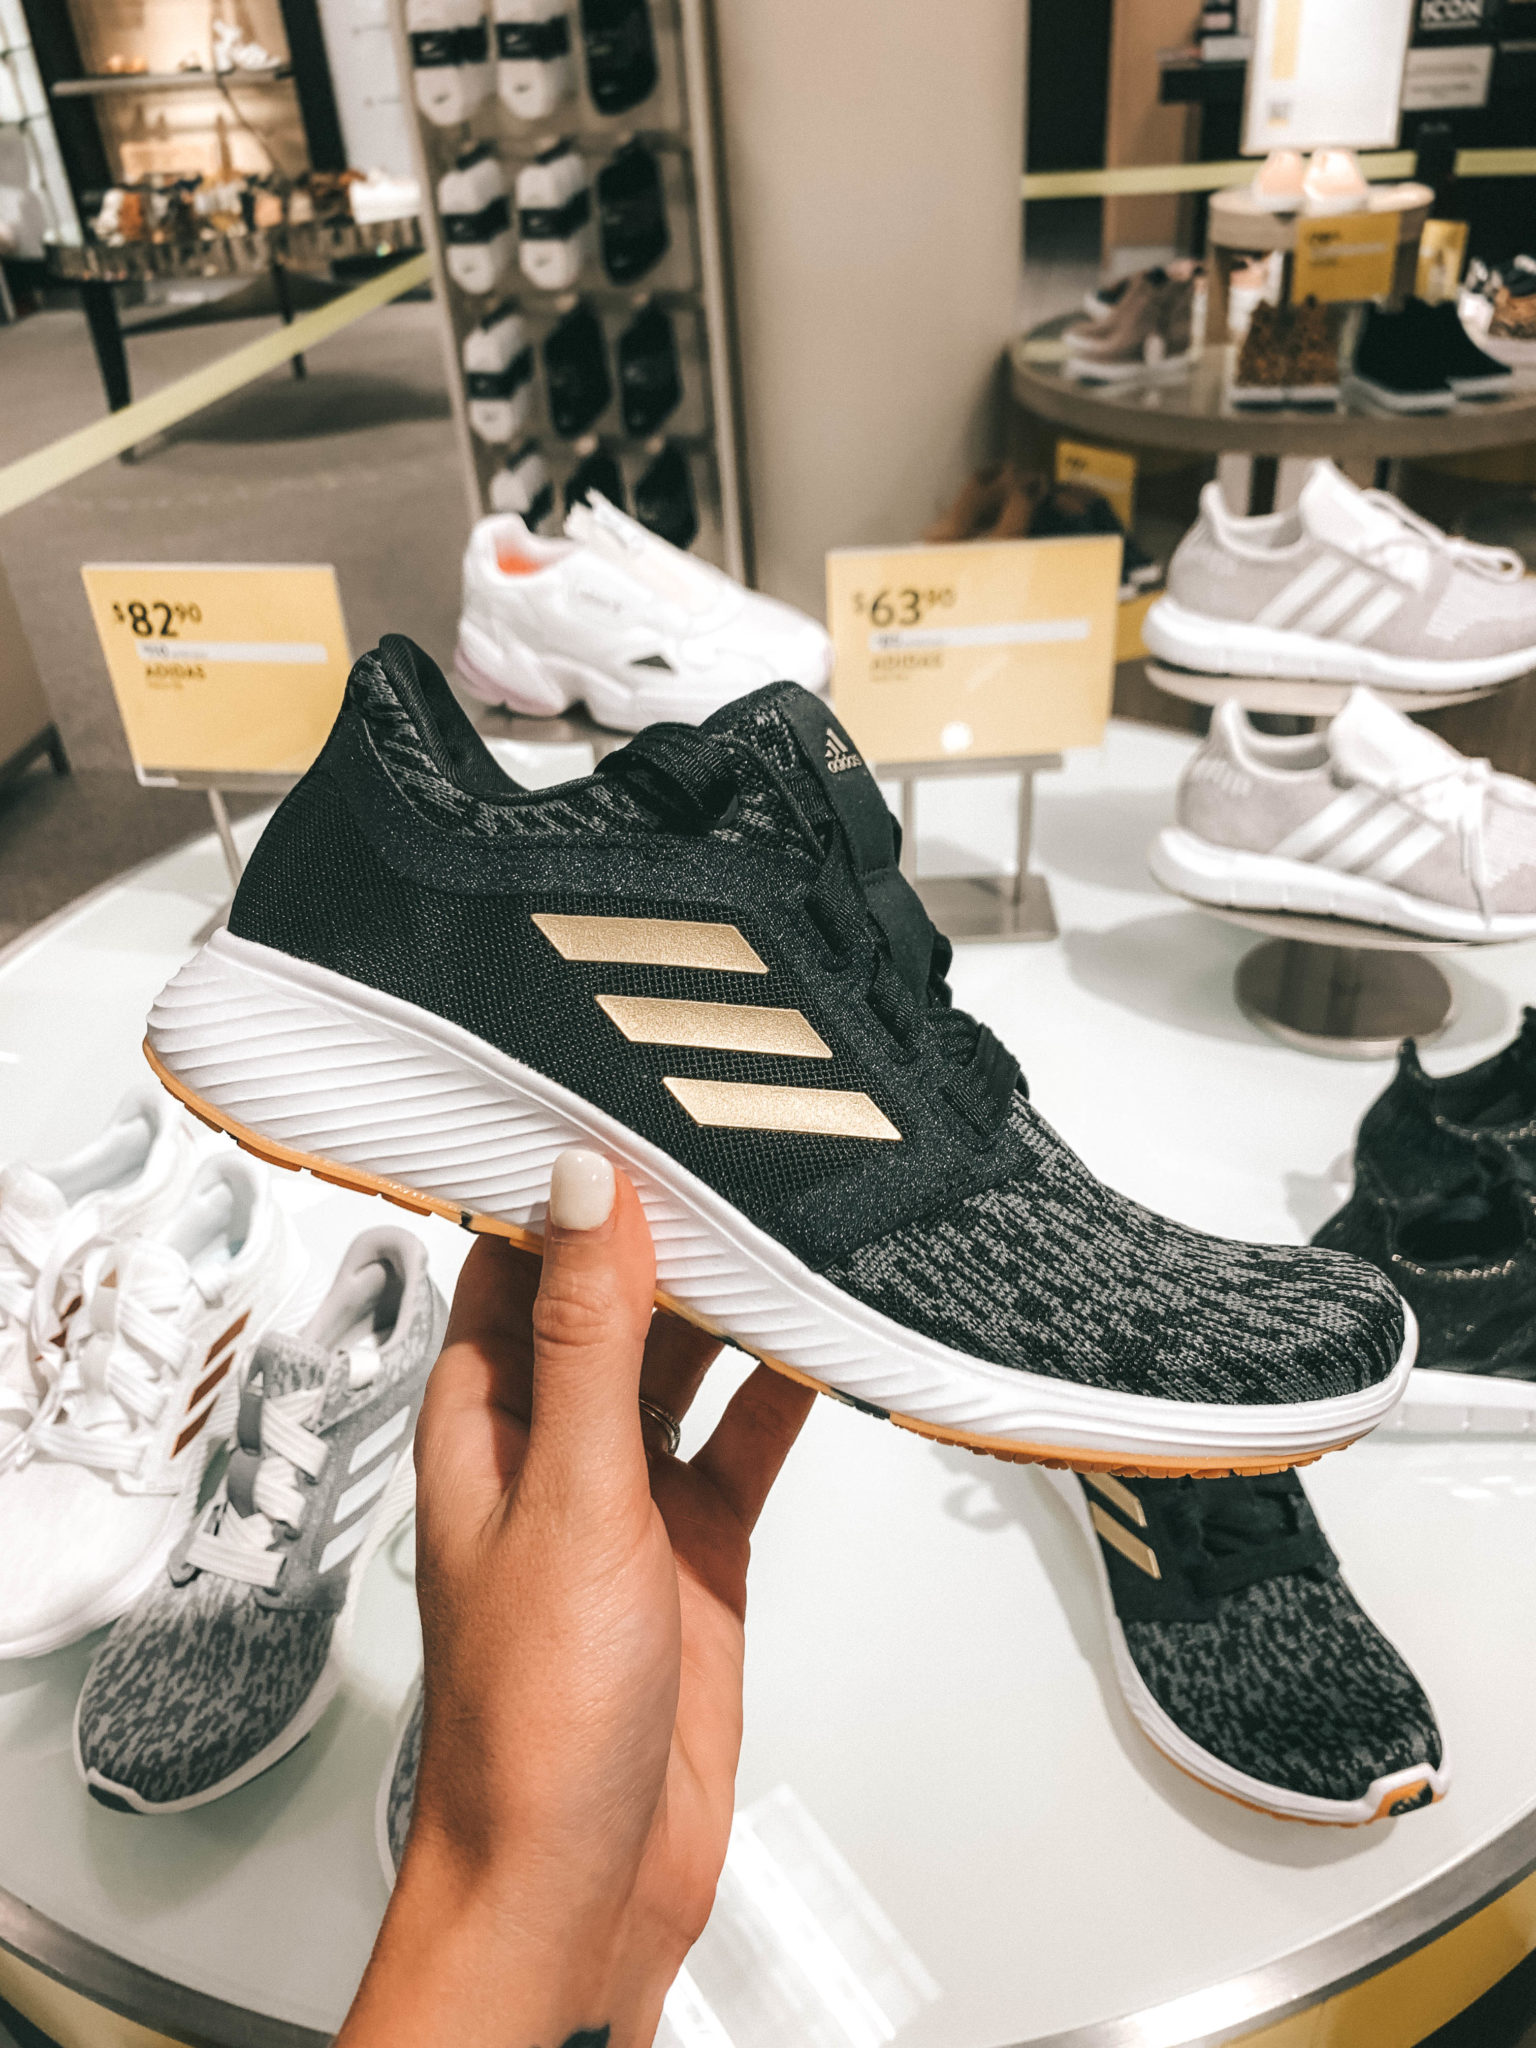 Top 11 Must Have Pieces from the Nordstrom Anniversary Sale by popular Austin fashion blog, Dressed to Kill: image of a woman holding a pair of black Edge Lux 3 Running Shoe by ADIDAS